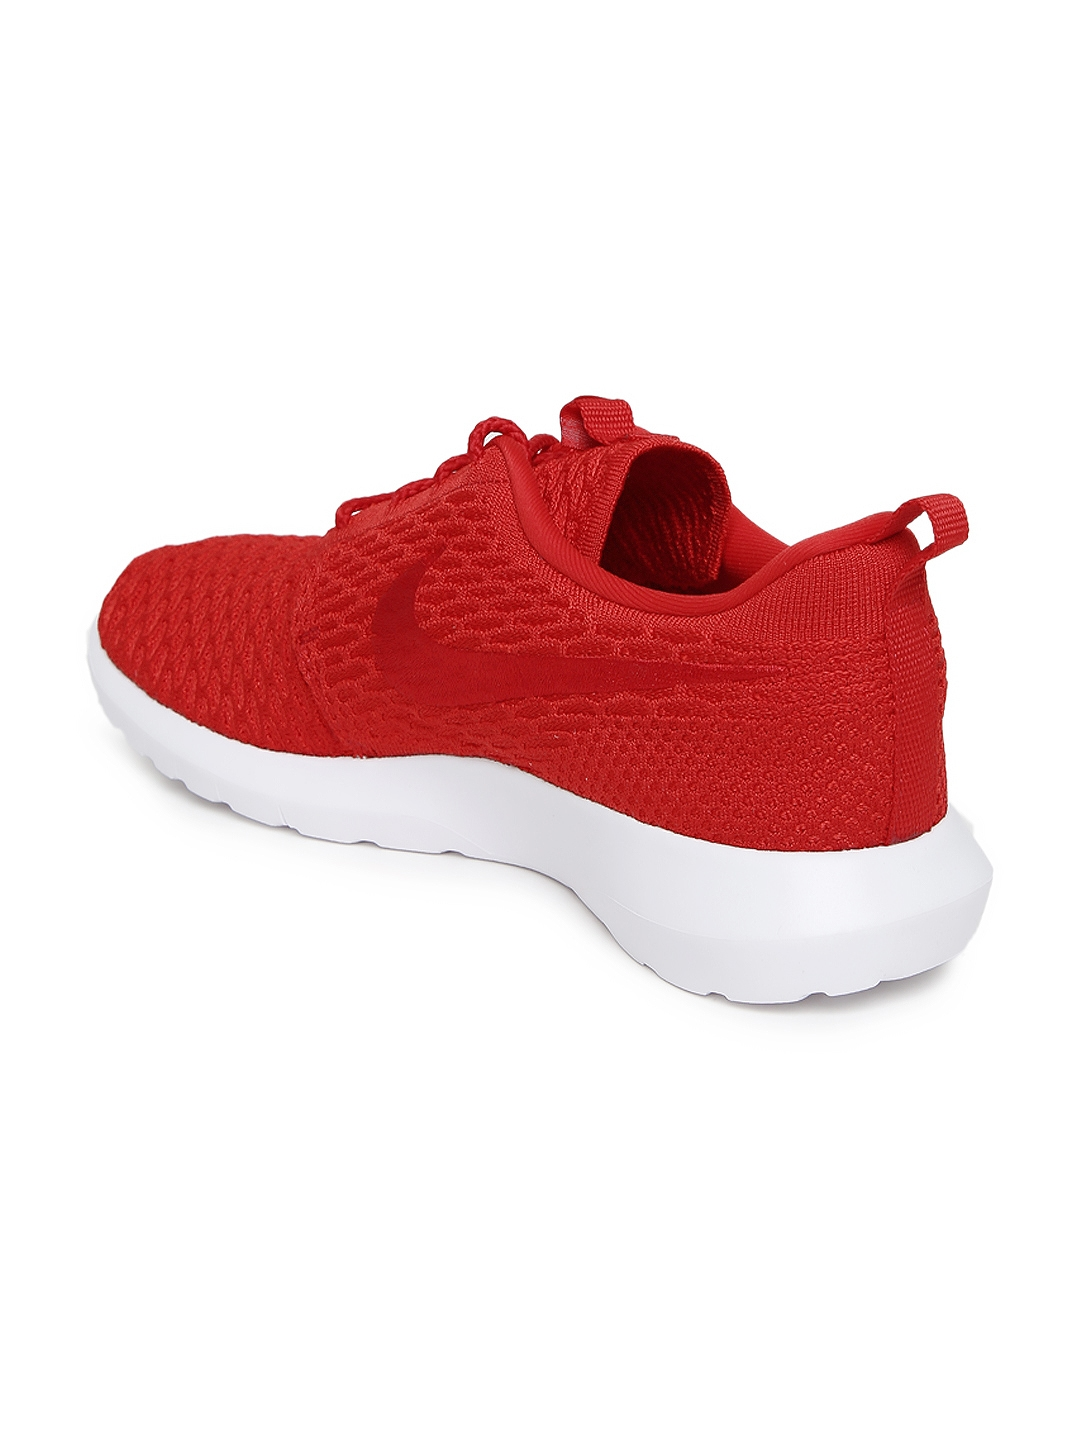 best service c80c5 e6bf7 Nike Men Red Roshe Flyknit NSW Casual Shoes